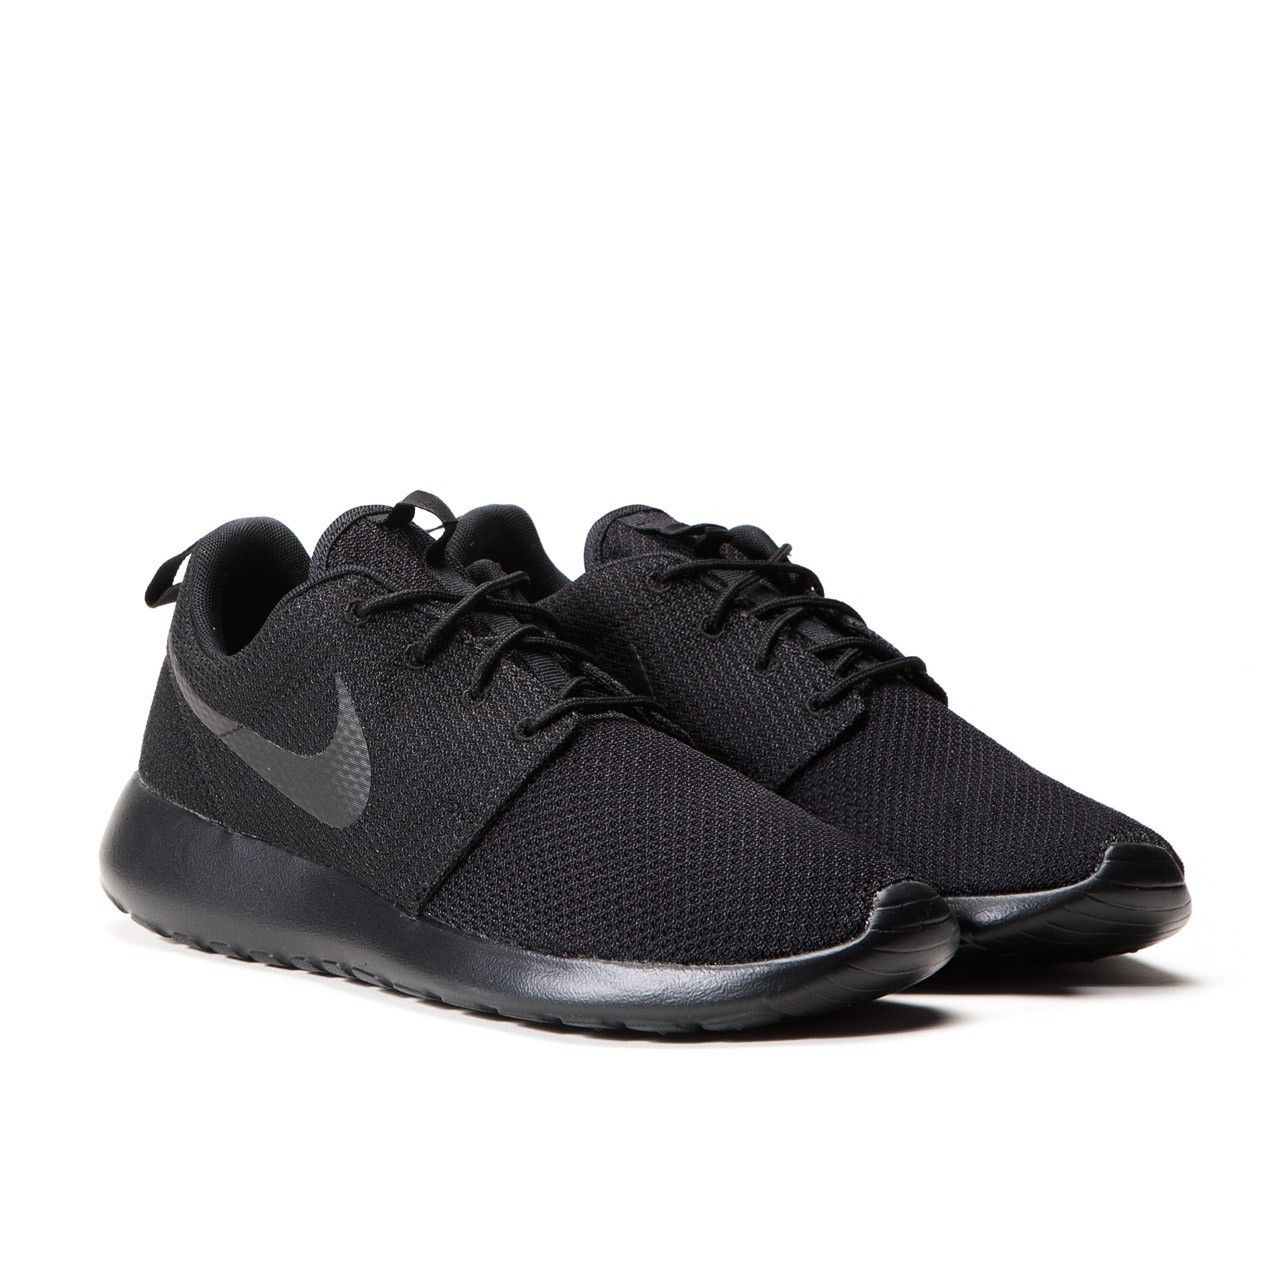 super popular de9be ed3eb WOMEN'S NIKE ROSHE RUN ONE Athletic Shoes ALL BLACK 511882-011